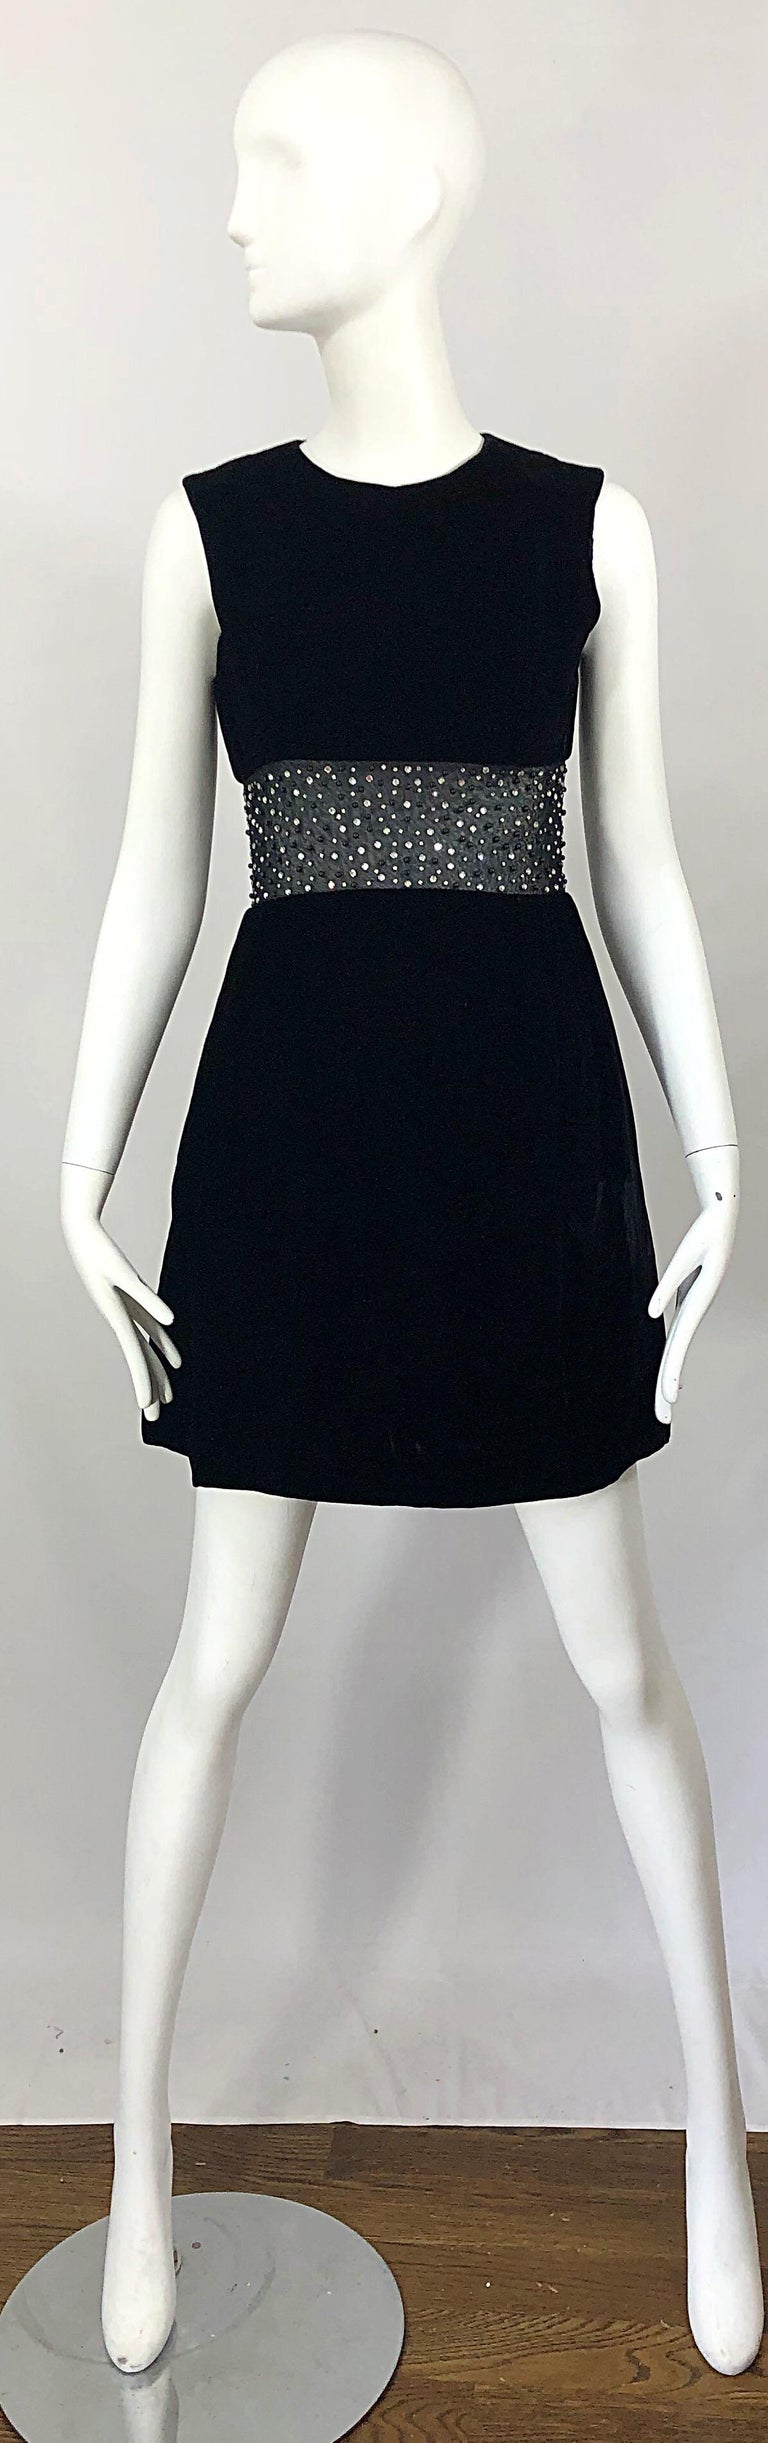 Chic 1960s black velvet cut-out A-Line dress! Features soft black velvet with a sheer black mesh cut-out at waist. Over 100 hand-sewn rhinestones and beads throughout the sheer paneling. Hidden metal zipper up the back with hook-and-eye closure.